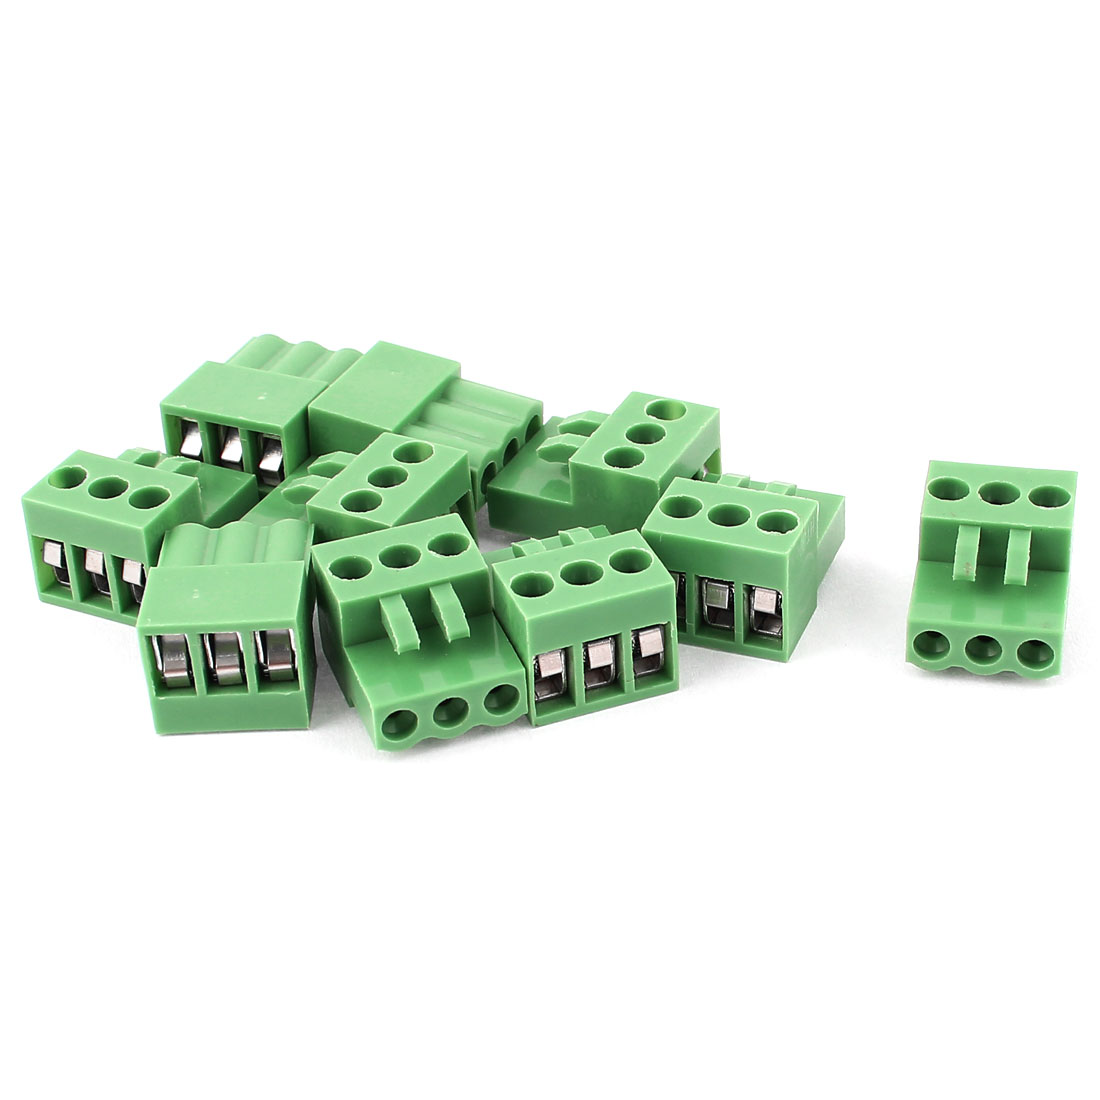 10pcs 3.96mm Pitch 3 Way Straight PCB Terminal Block Connector Green